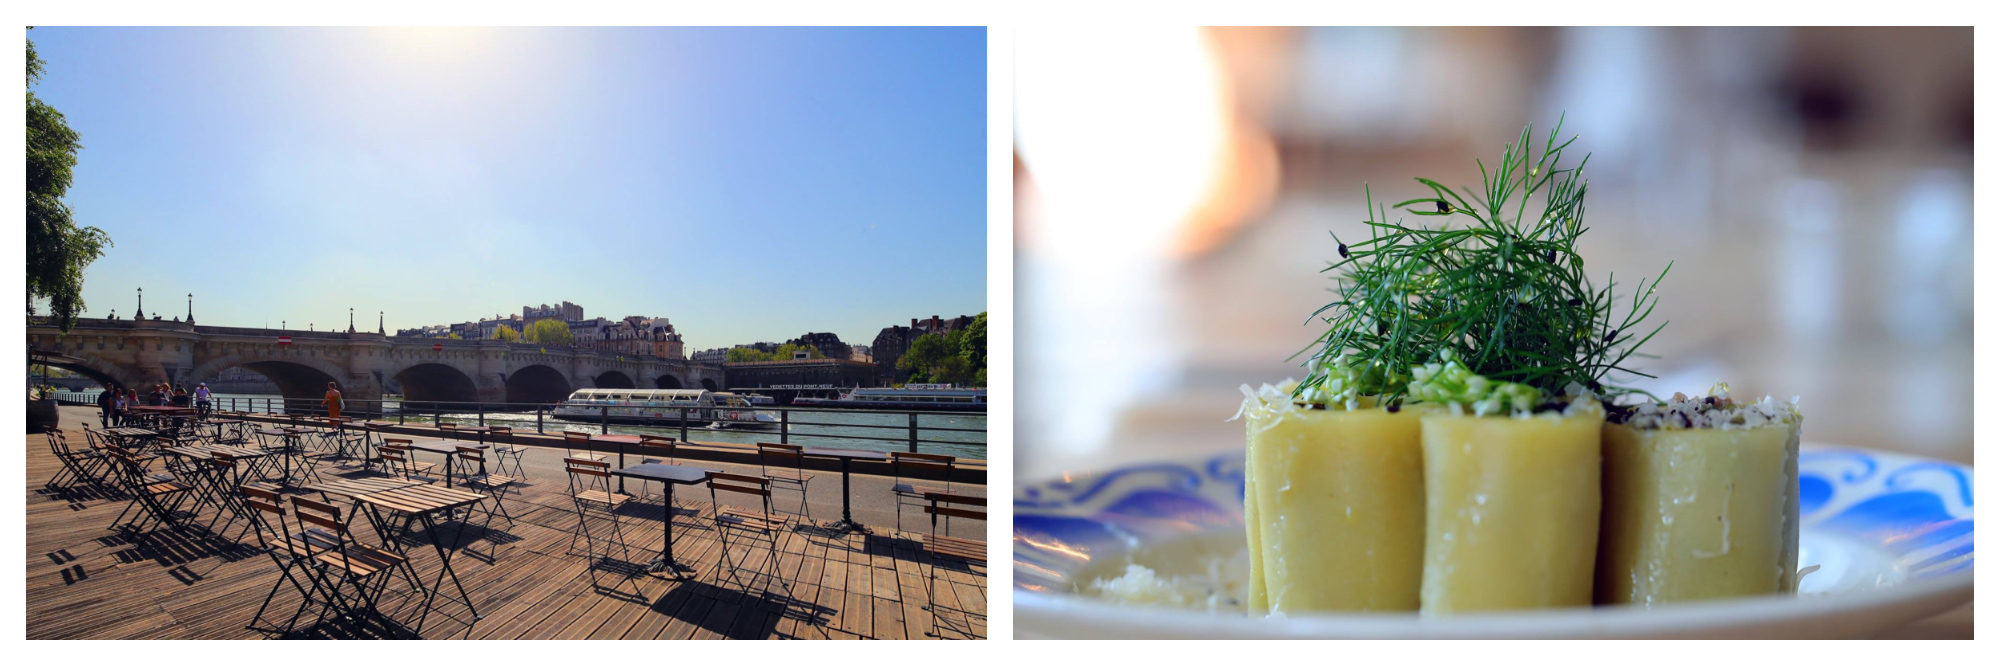 Maison Maison terrace in Paris is a top spot for drinks on the River Seine (left) as well as healthy snacks like these quinoa rolls (right).